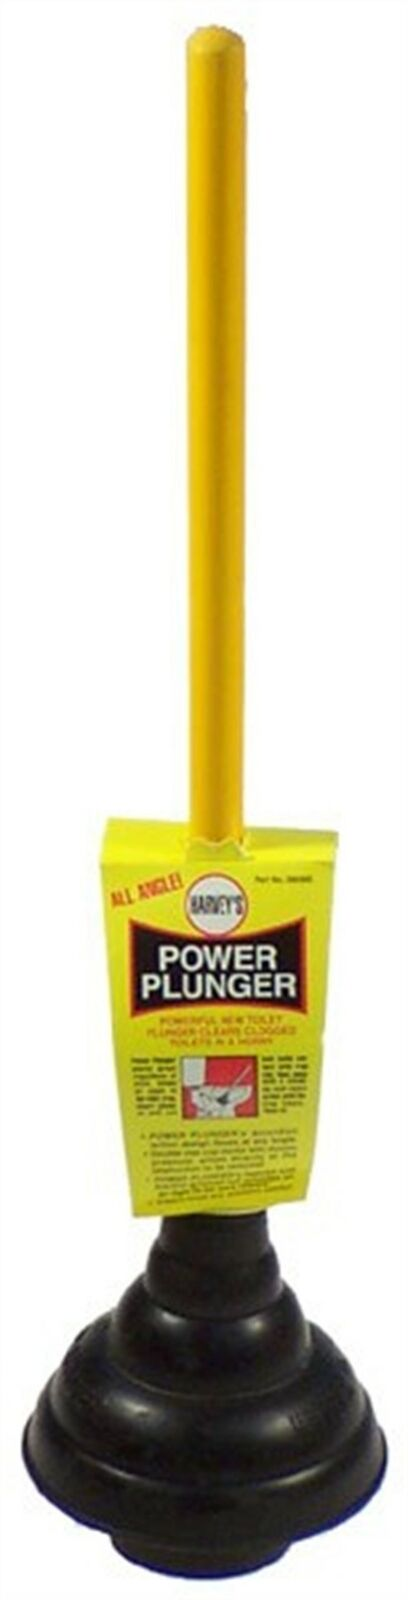 WM Harvey 90300 Rubber Cup Power Plunger with 21 in. Wood Handle (Pack of 6)